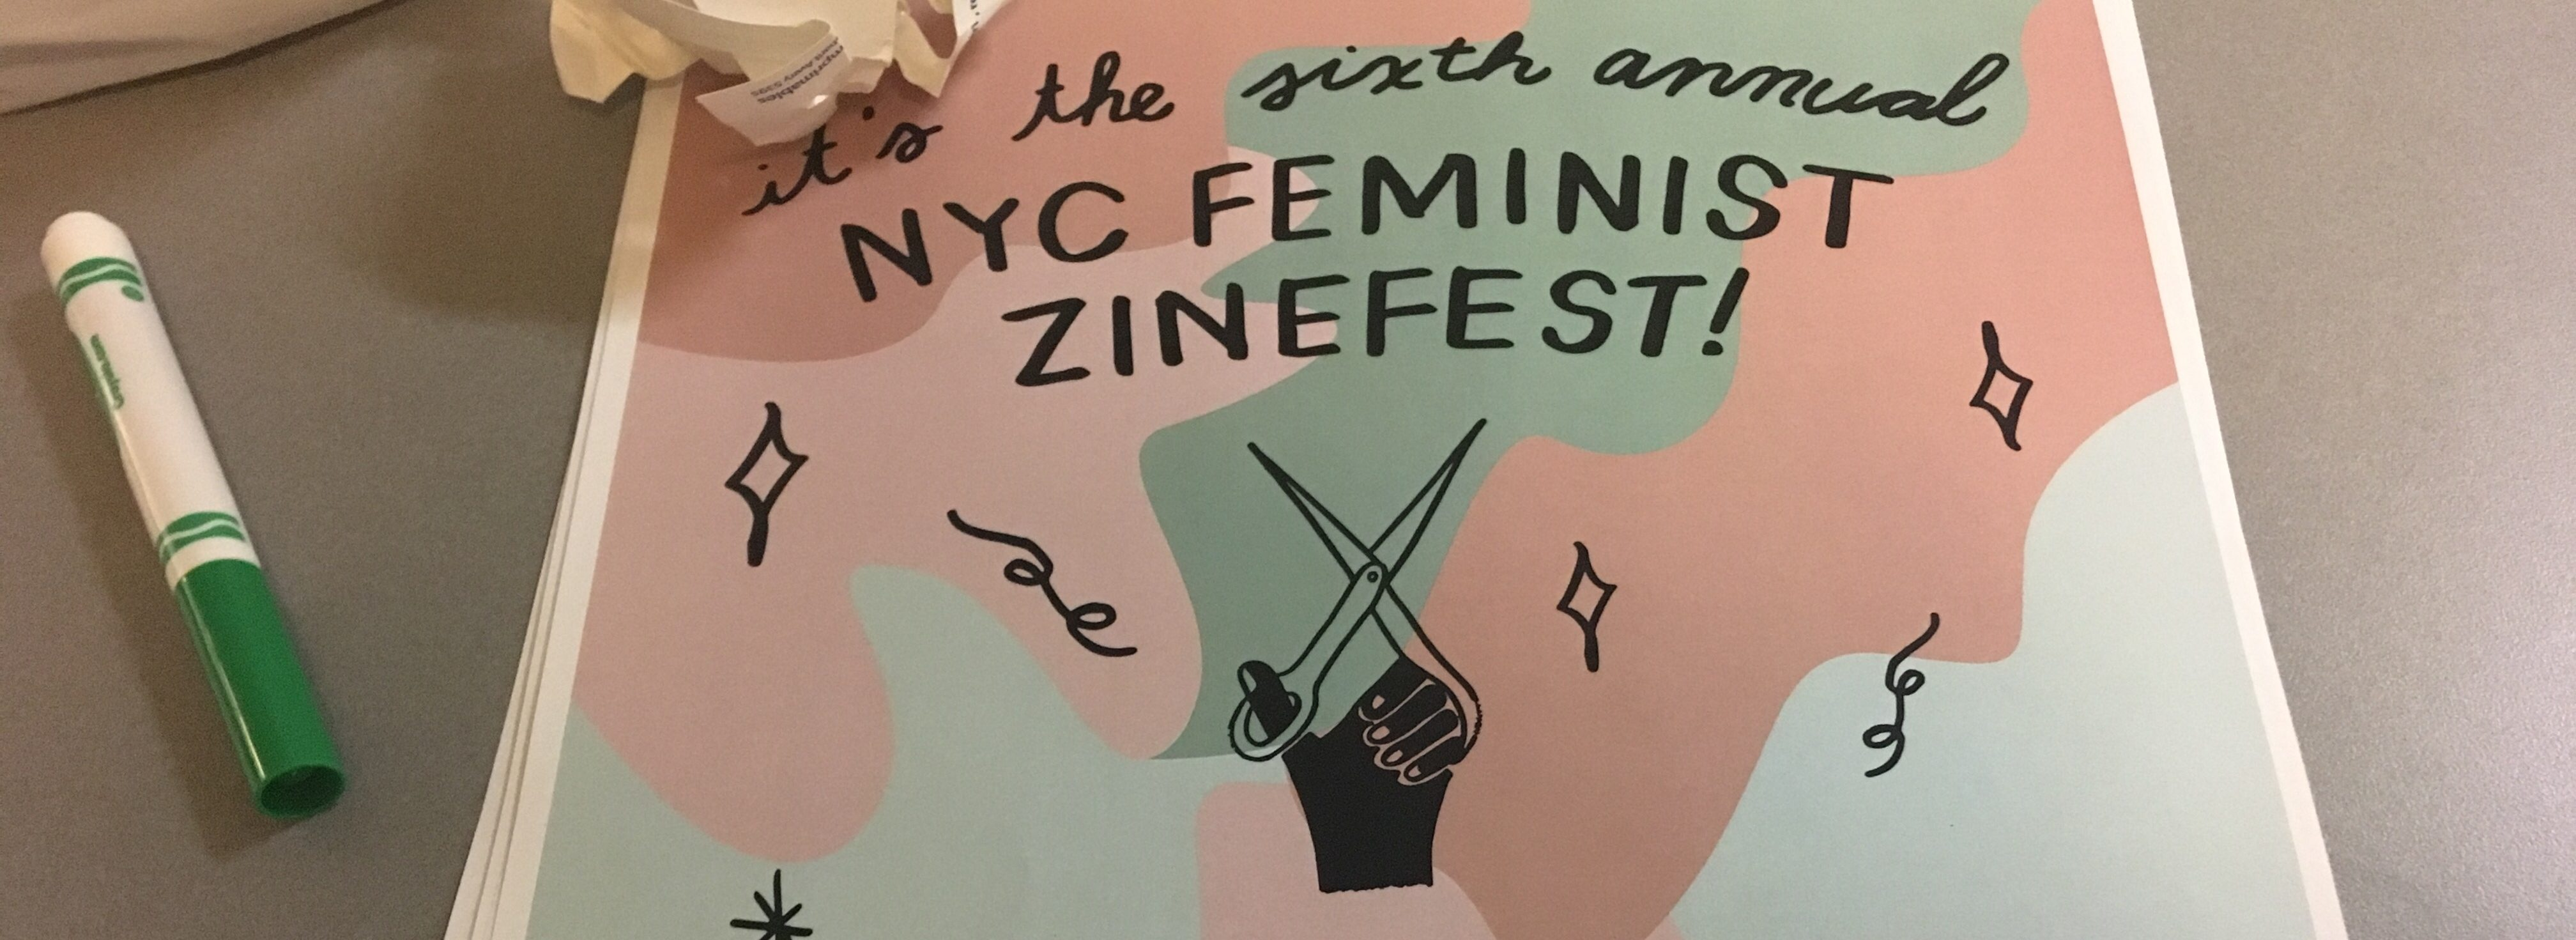 NYC Feminist Zinefest Is A Joy